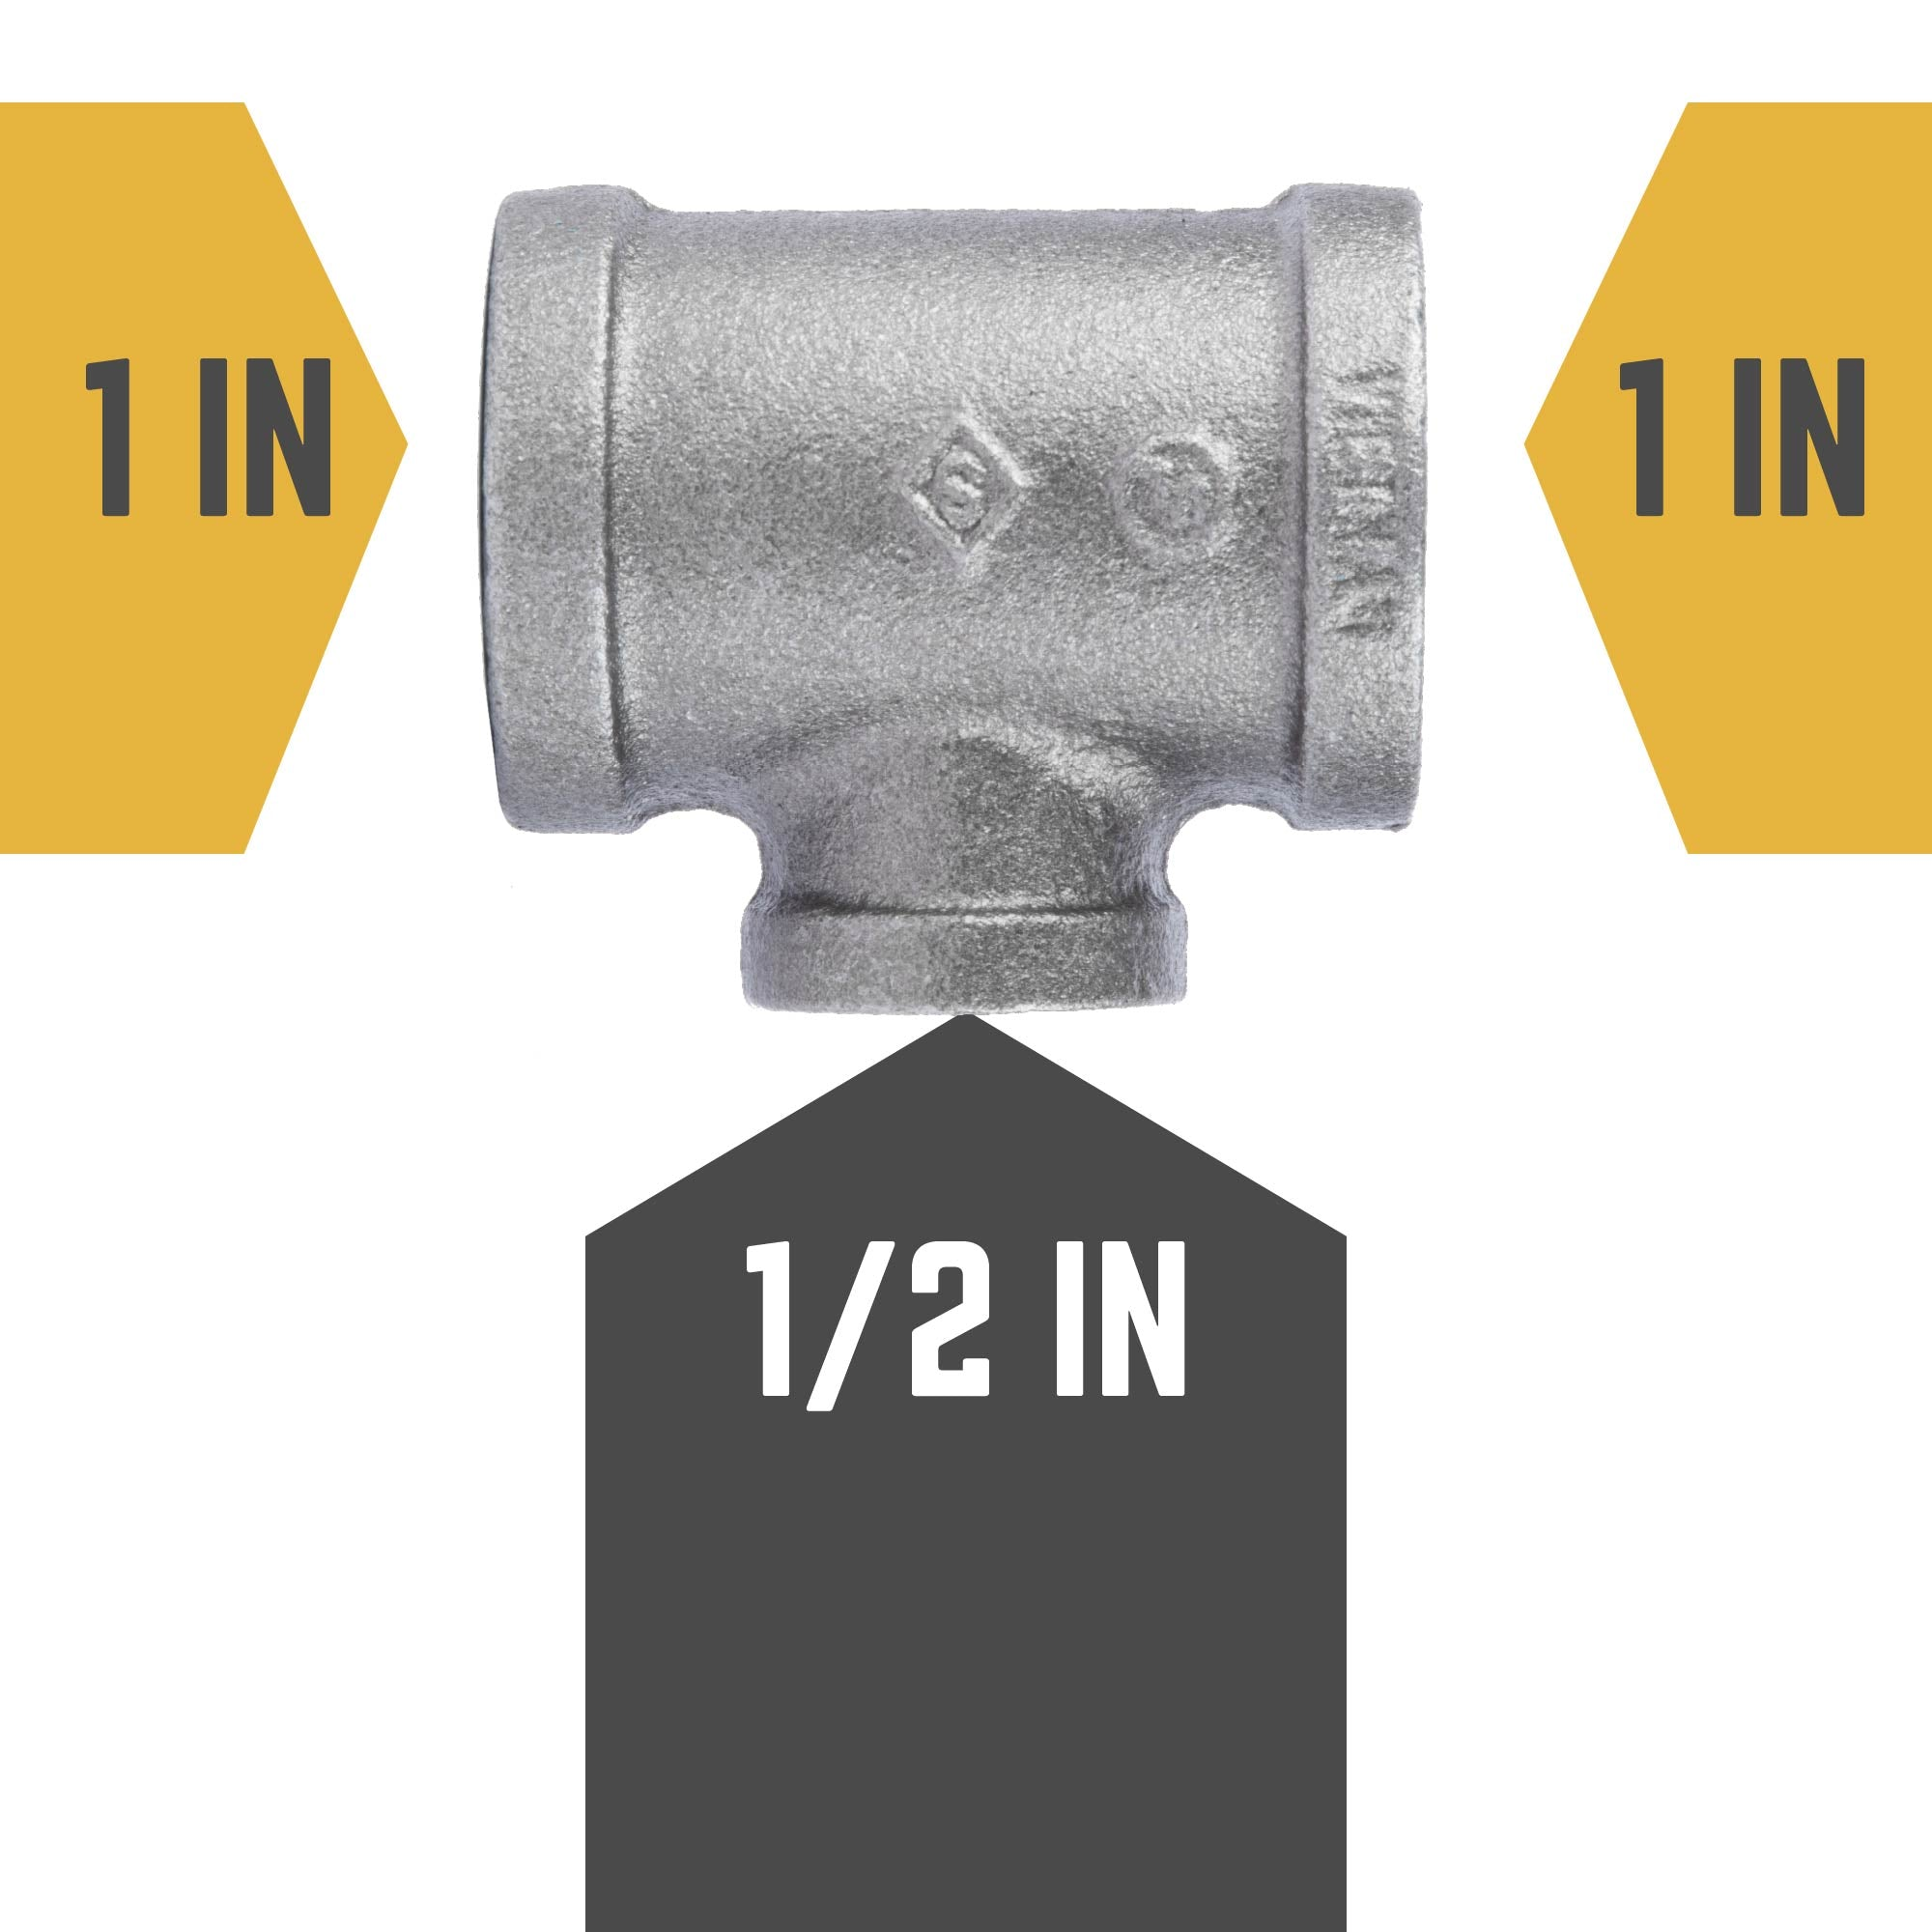 1 in. X 1 in. X 1/2 in. Reducing Tee - Pipe Decor